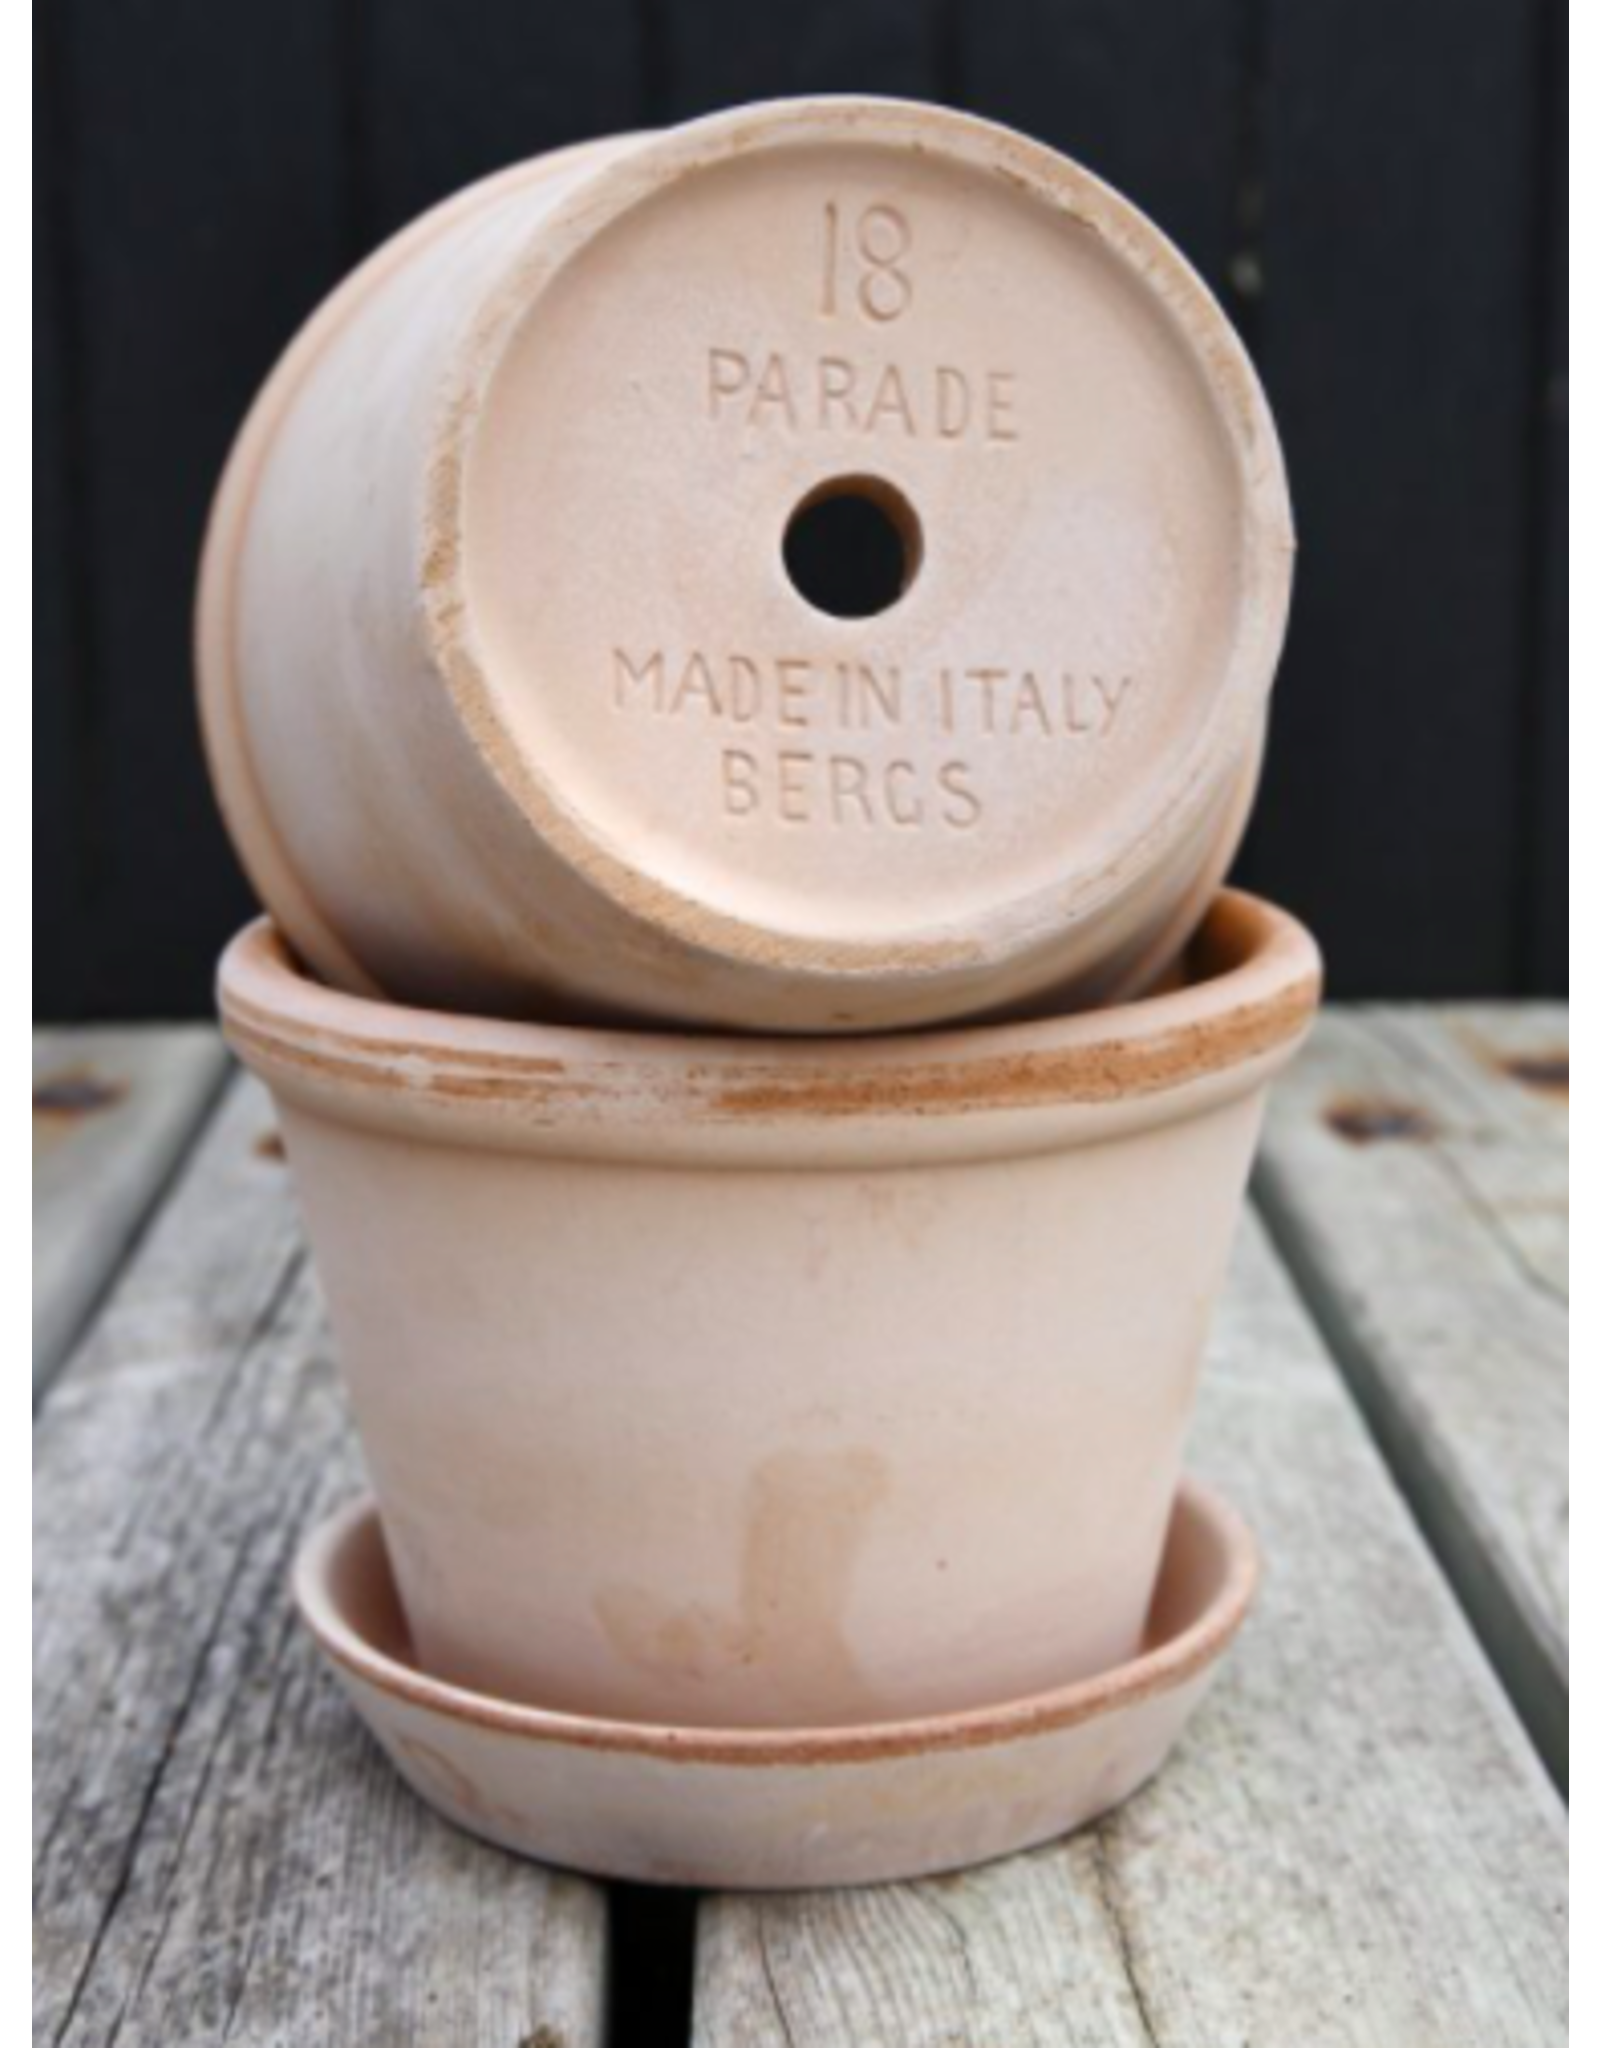 """Bergs Potter Parade Pot in Rose + Saucer by Bergs Potter 7.1"""""""